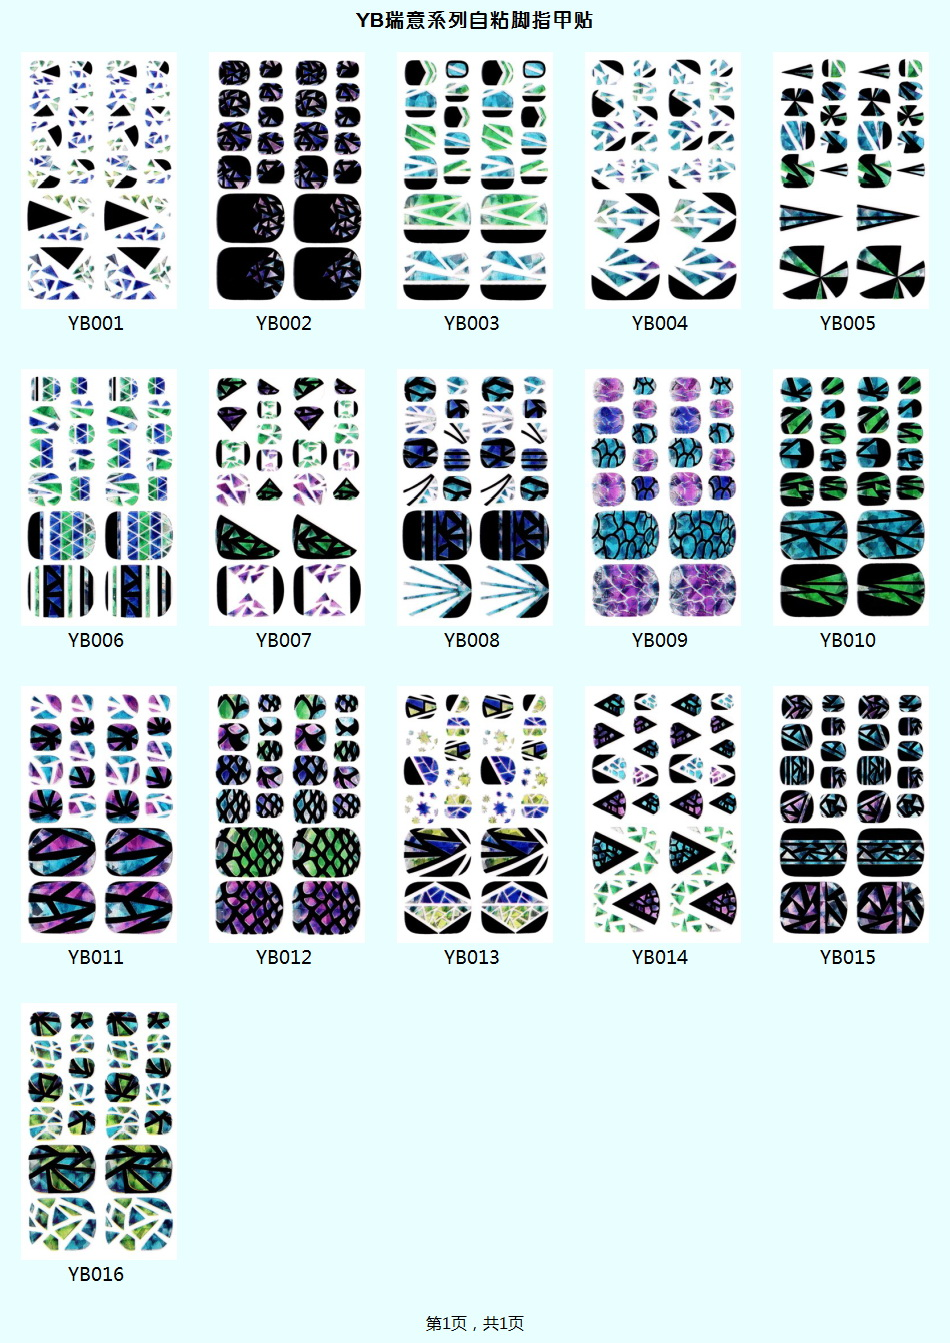 YB Series/Rocooart 2016 Unique Uv Gel 3d Toe Nail Art Foil Stickers Colored Stripes Galaxy Design Manicure Auto Adhesive Decals(China (Mainland))